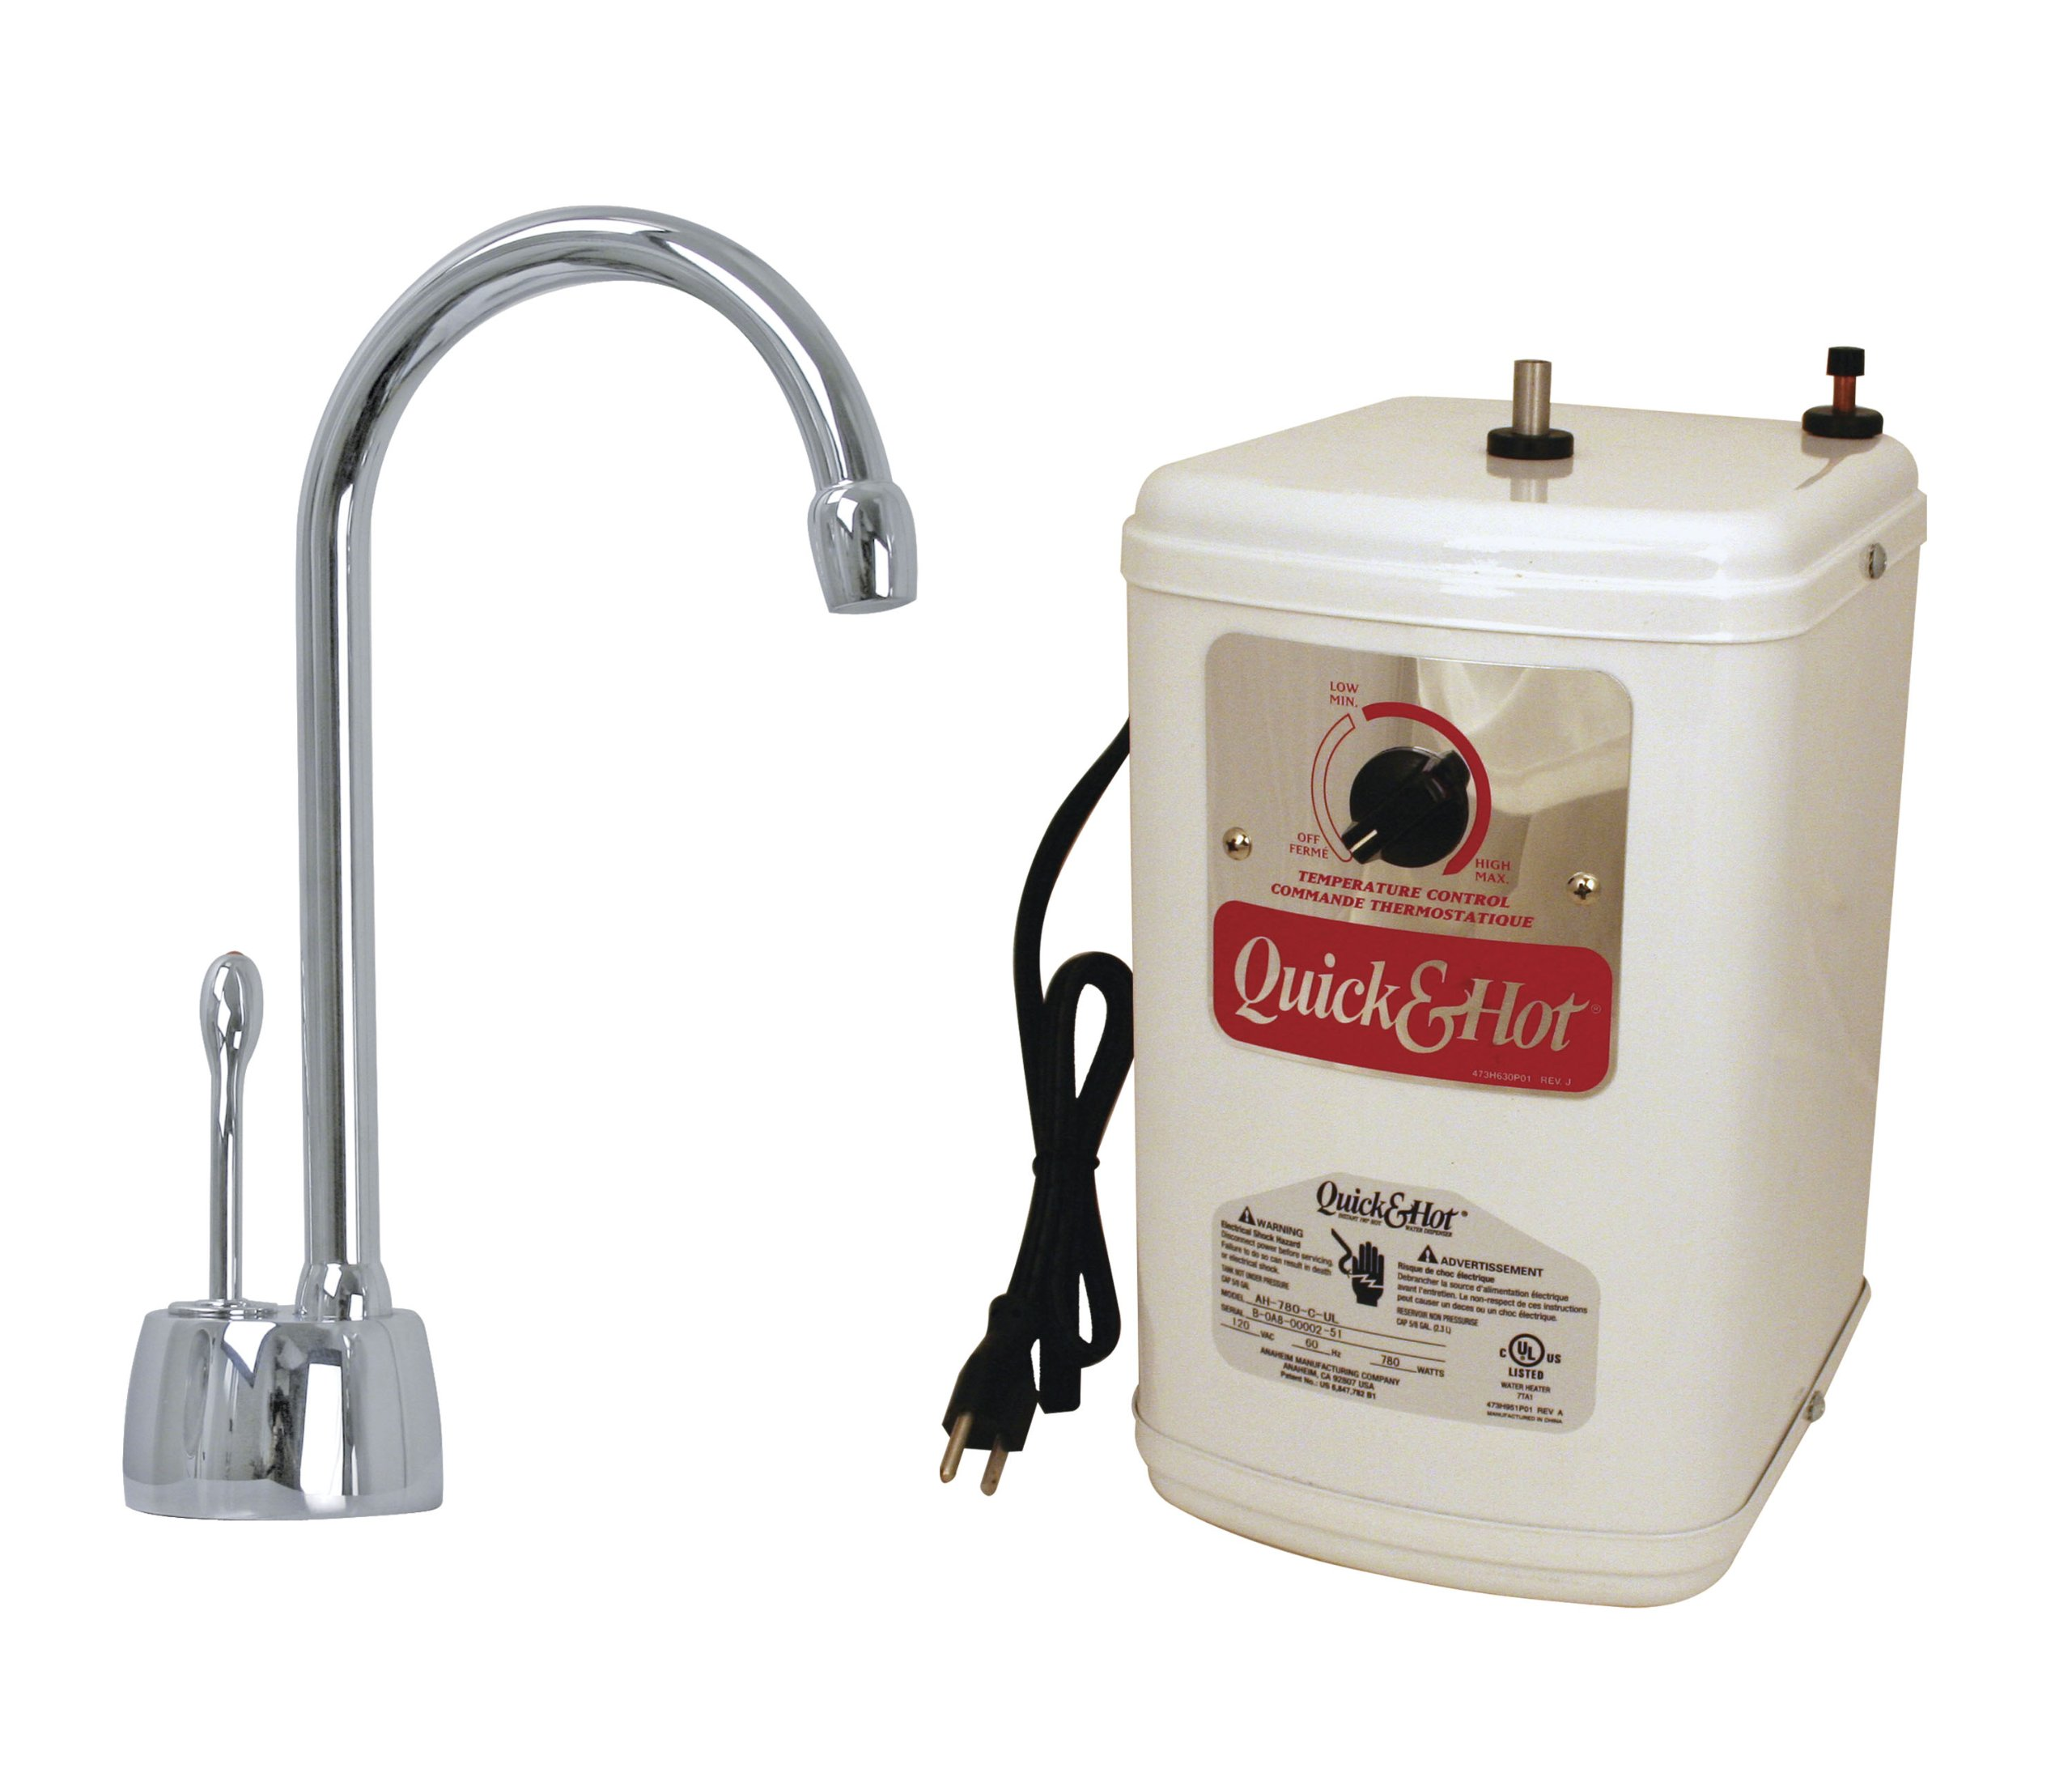 Westbrass Velosah 1-Handle Hot Water Dispenser Faucet with Instant Hot Tank, Polished Chrome, D271H-26